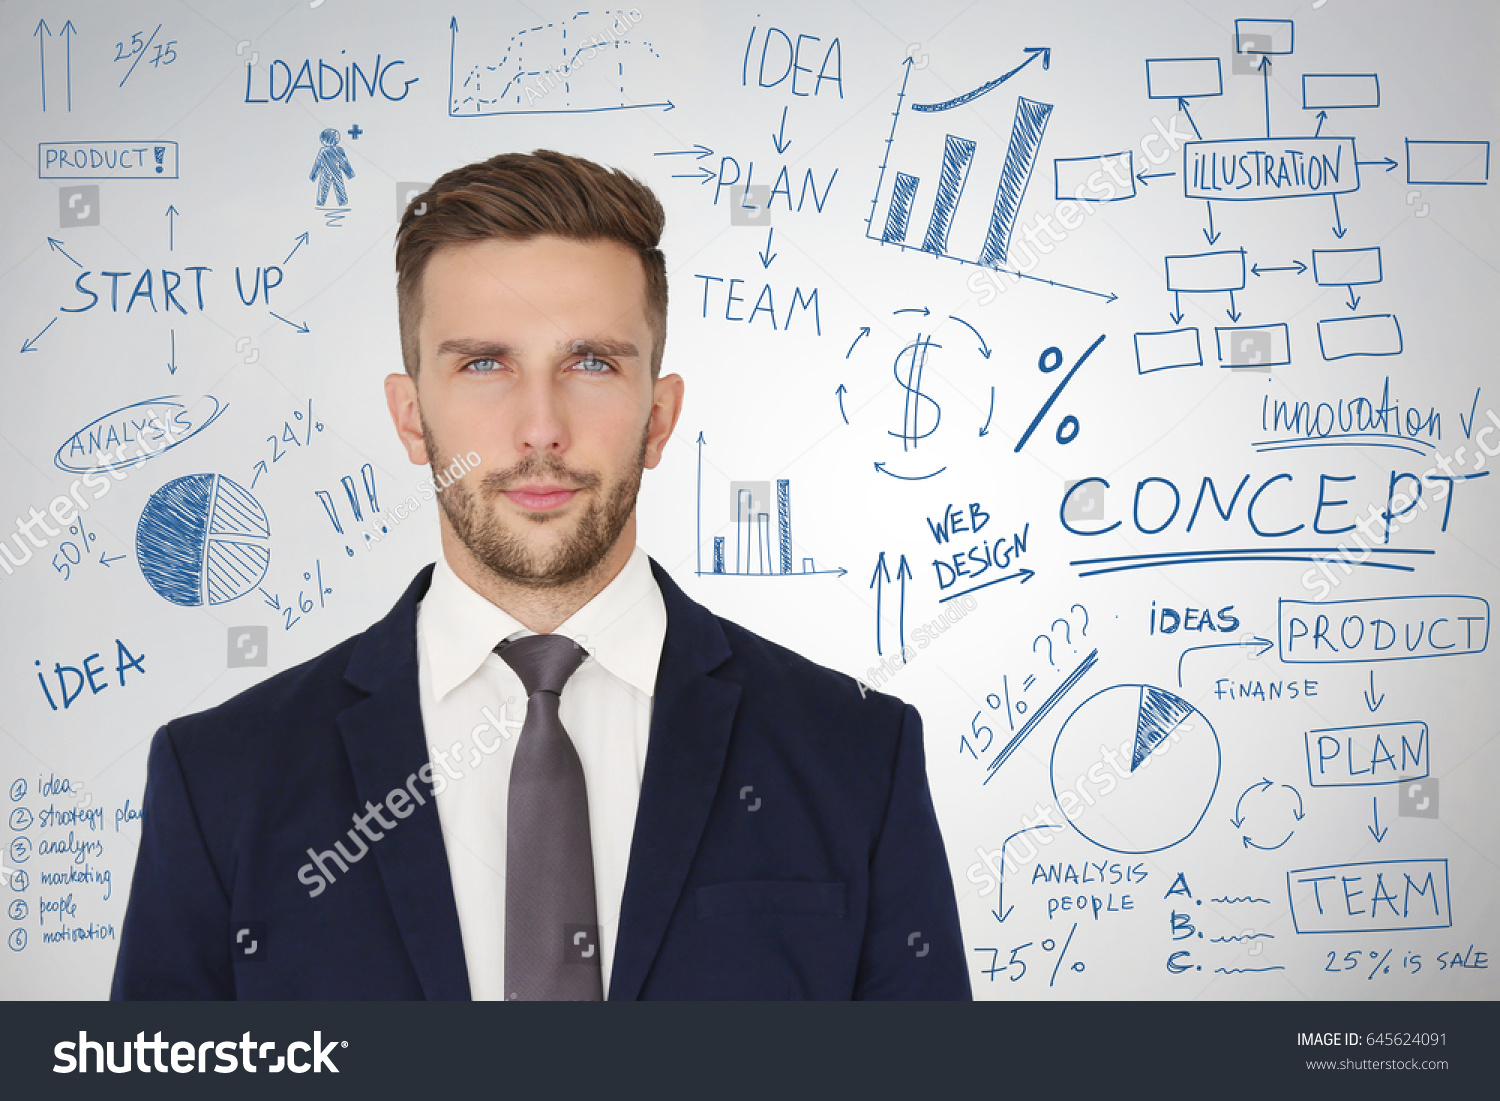 man presenting business plan on light background